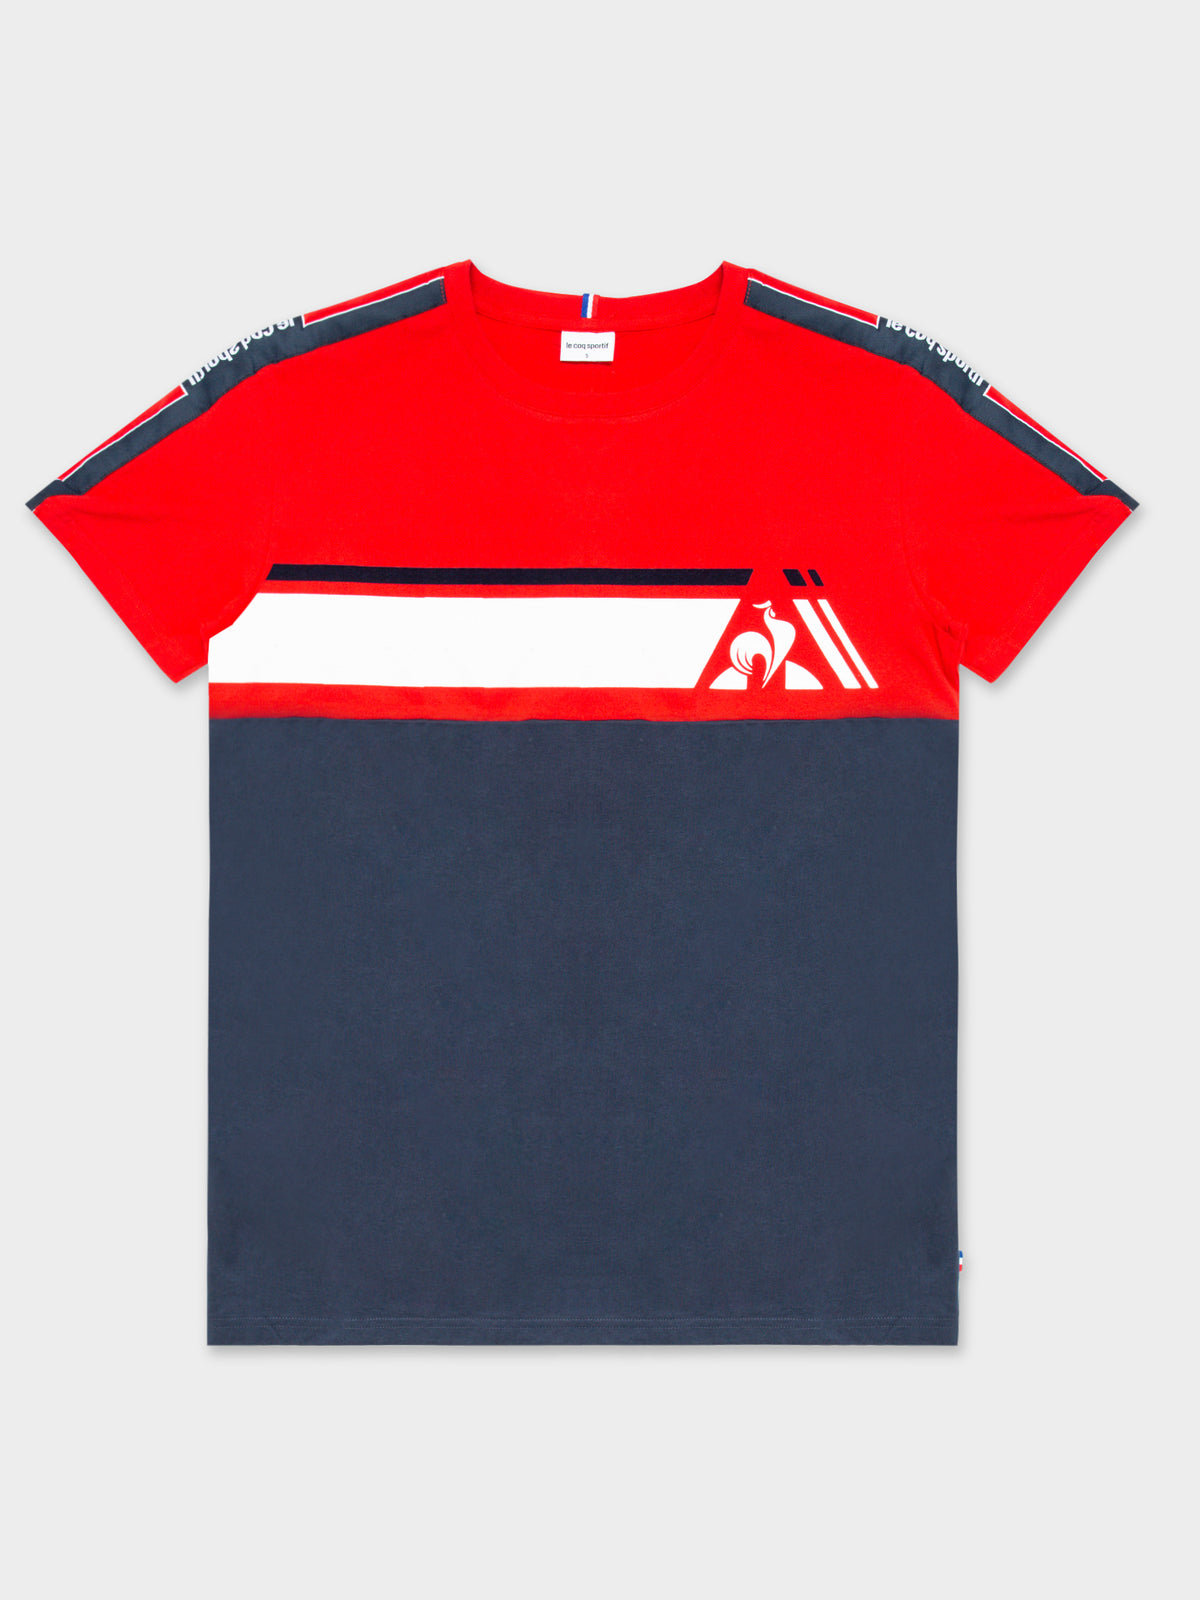 Orx T-Shirt in Rouge Red